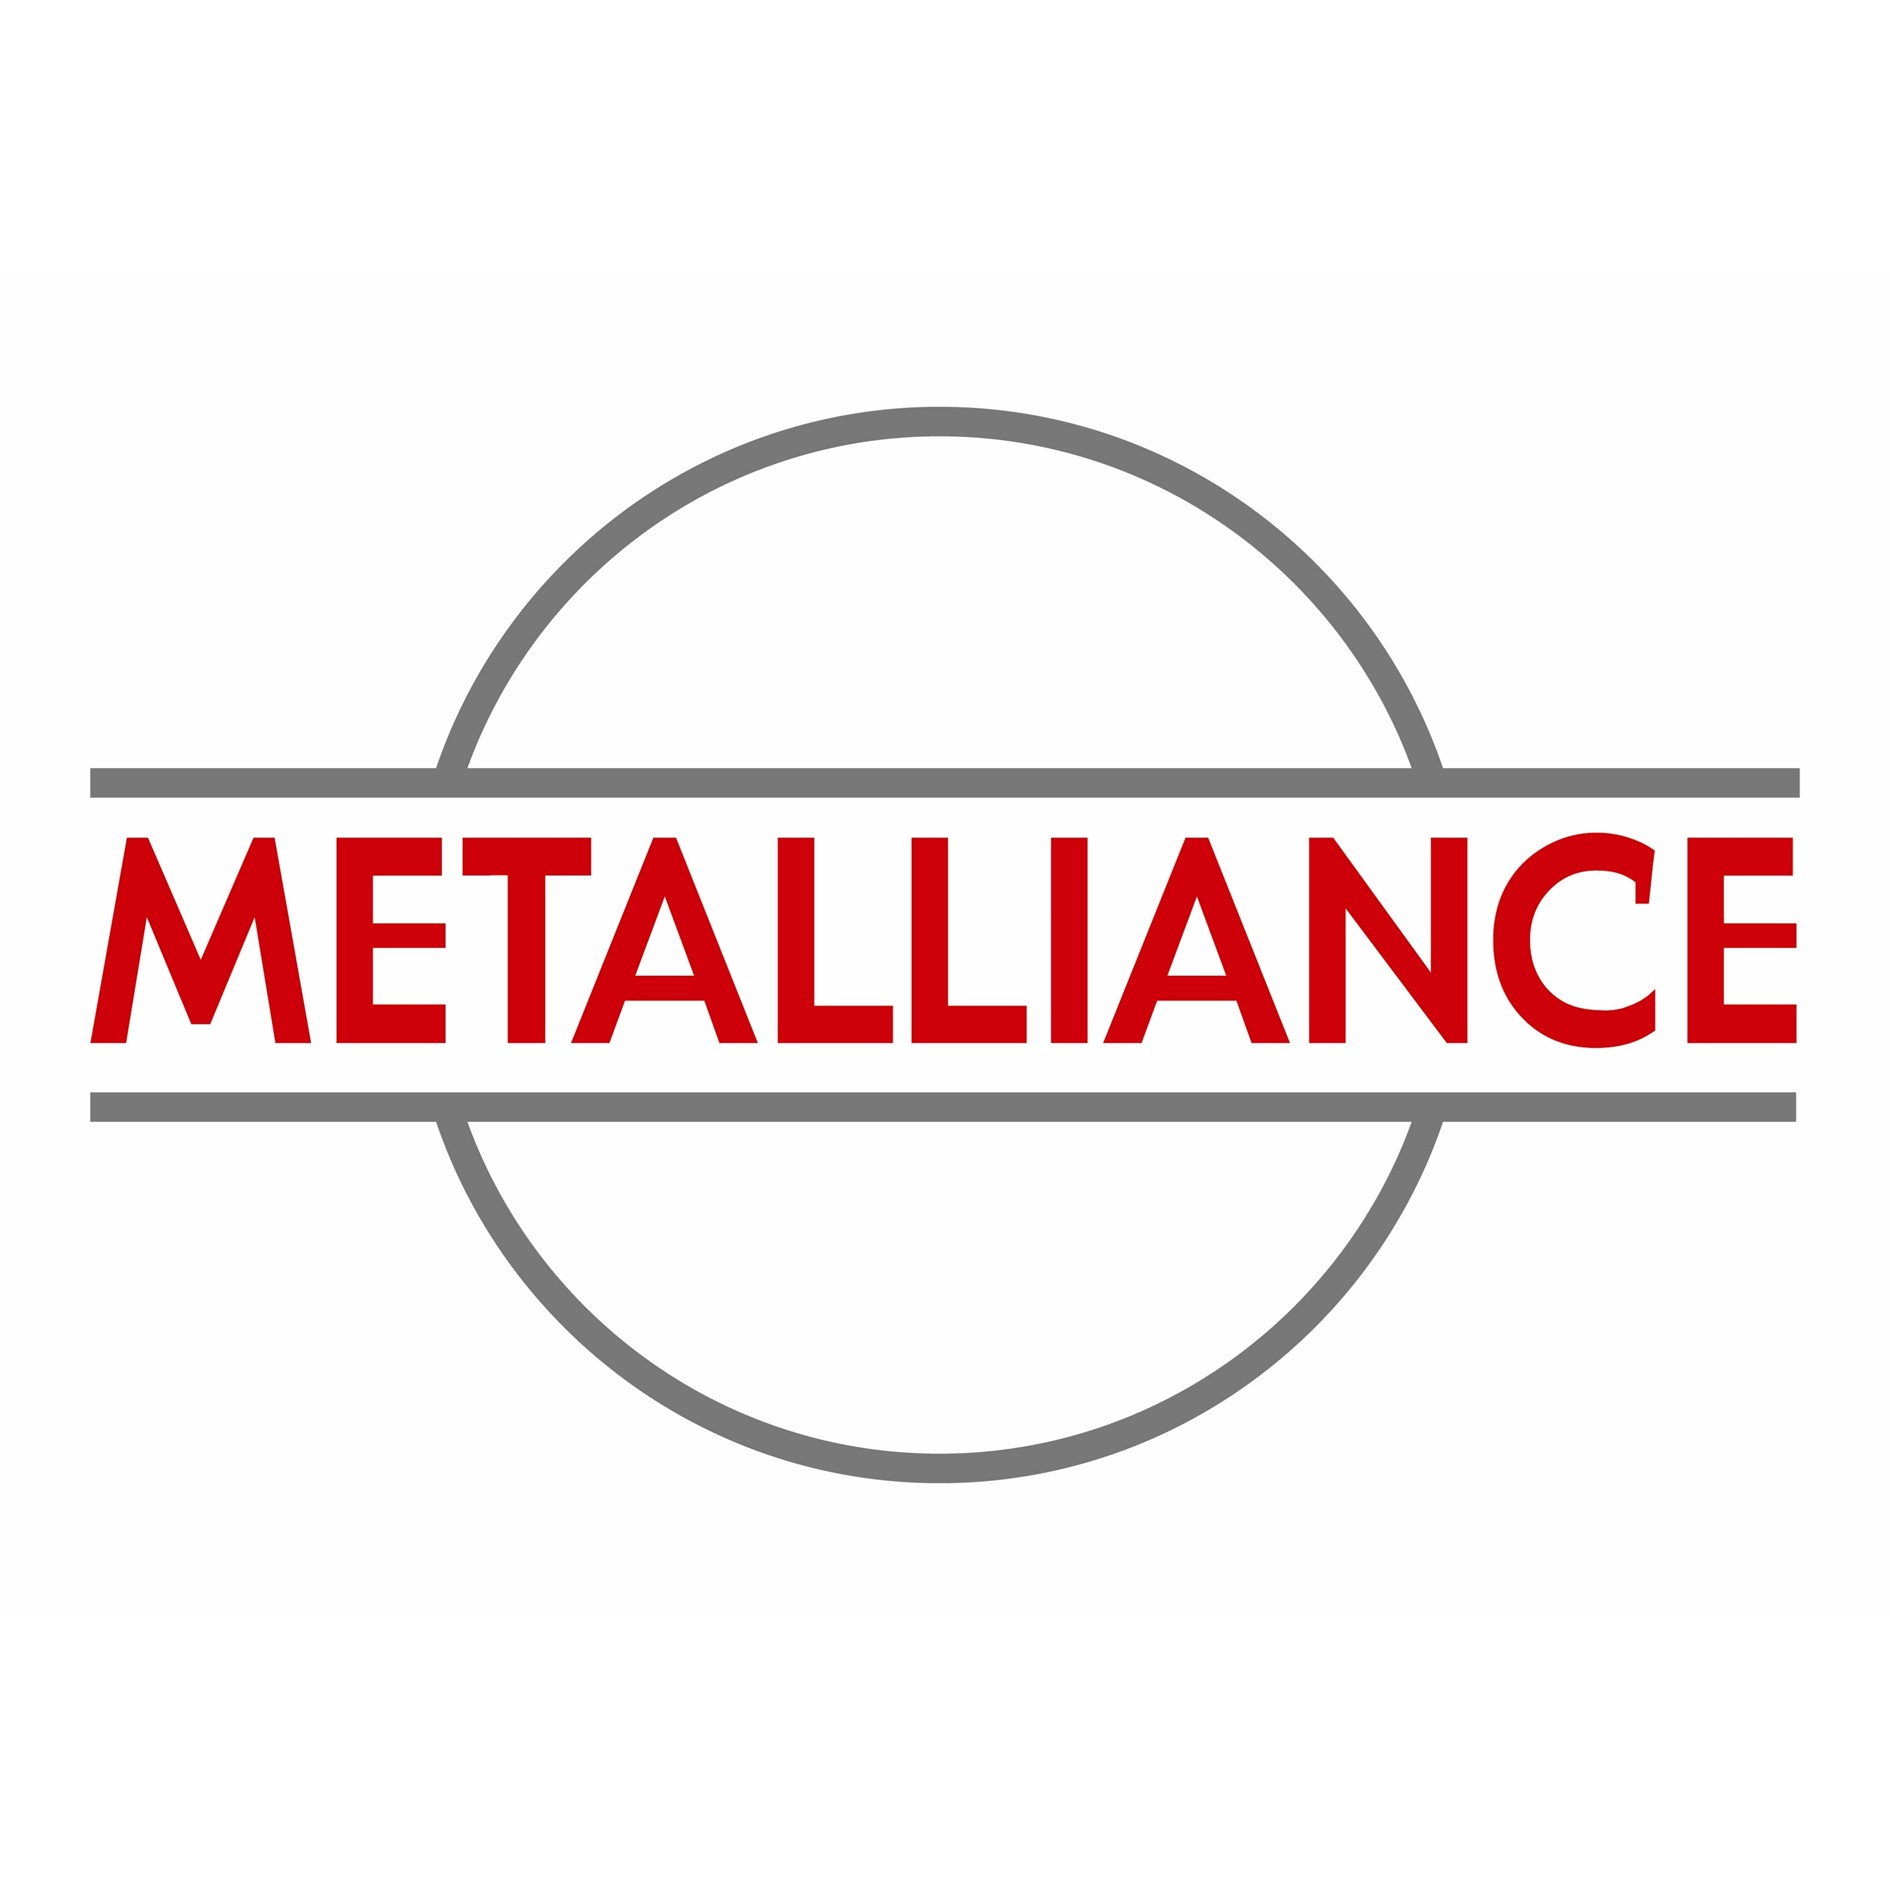 Metalliance